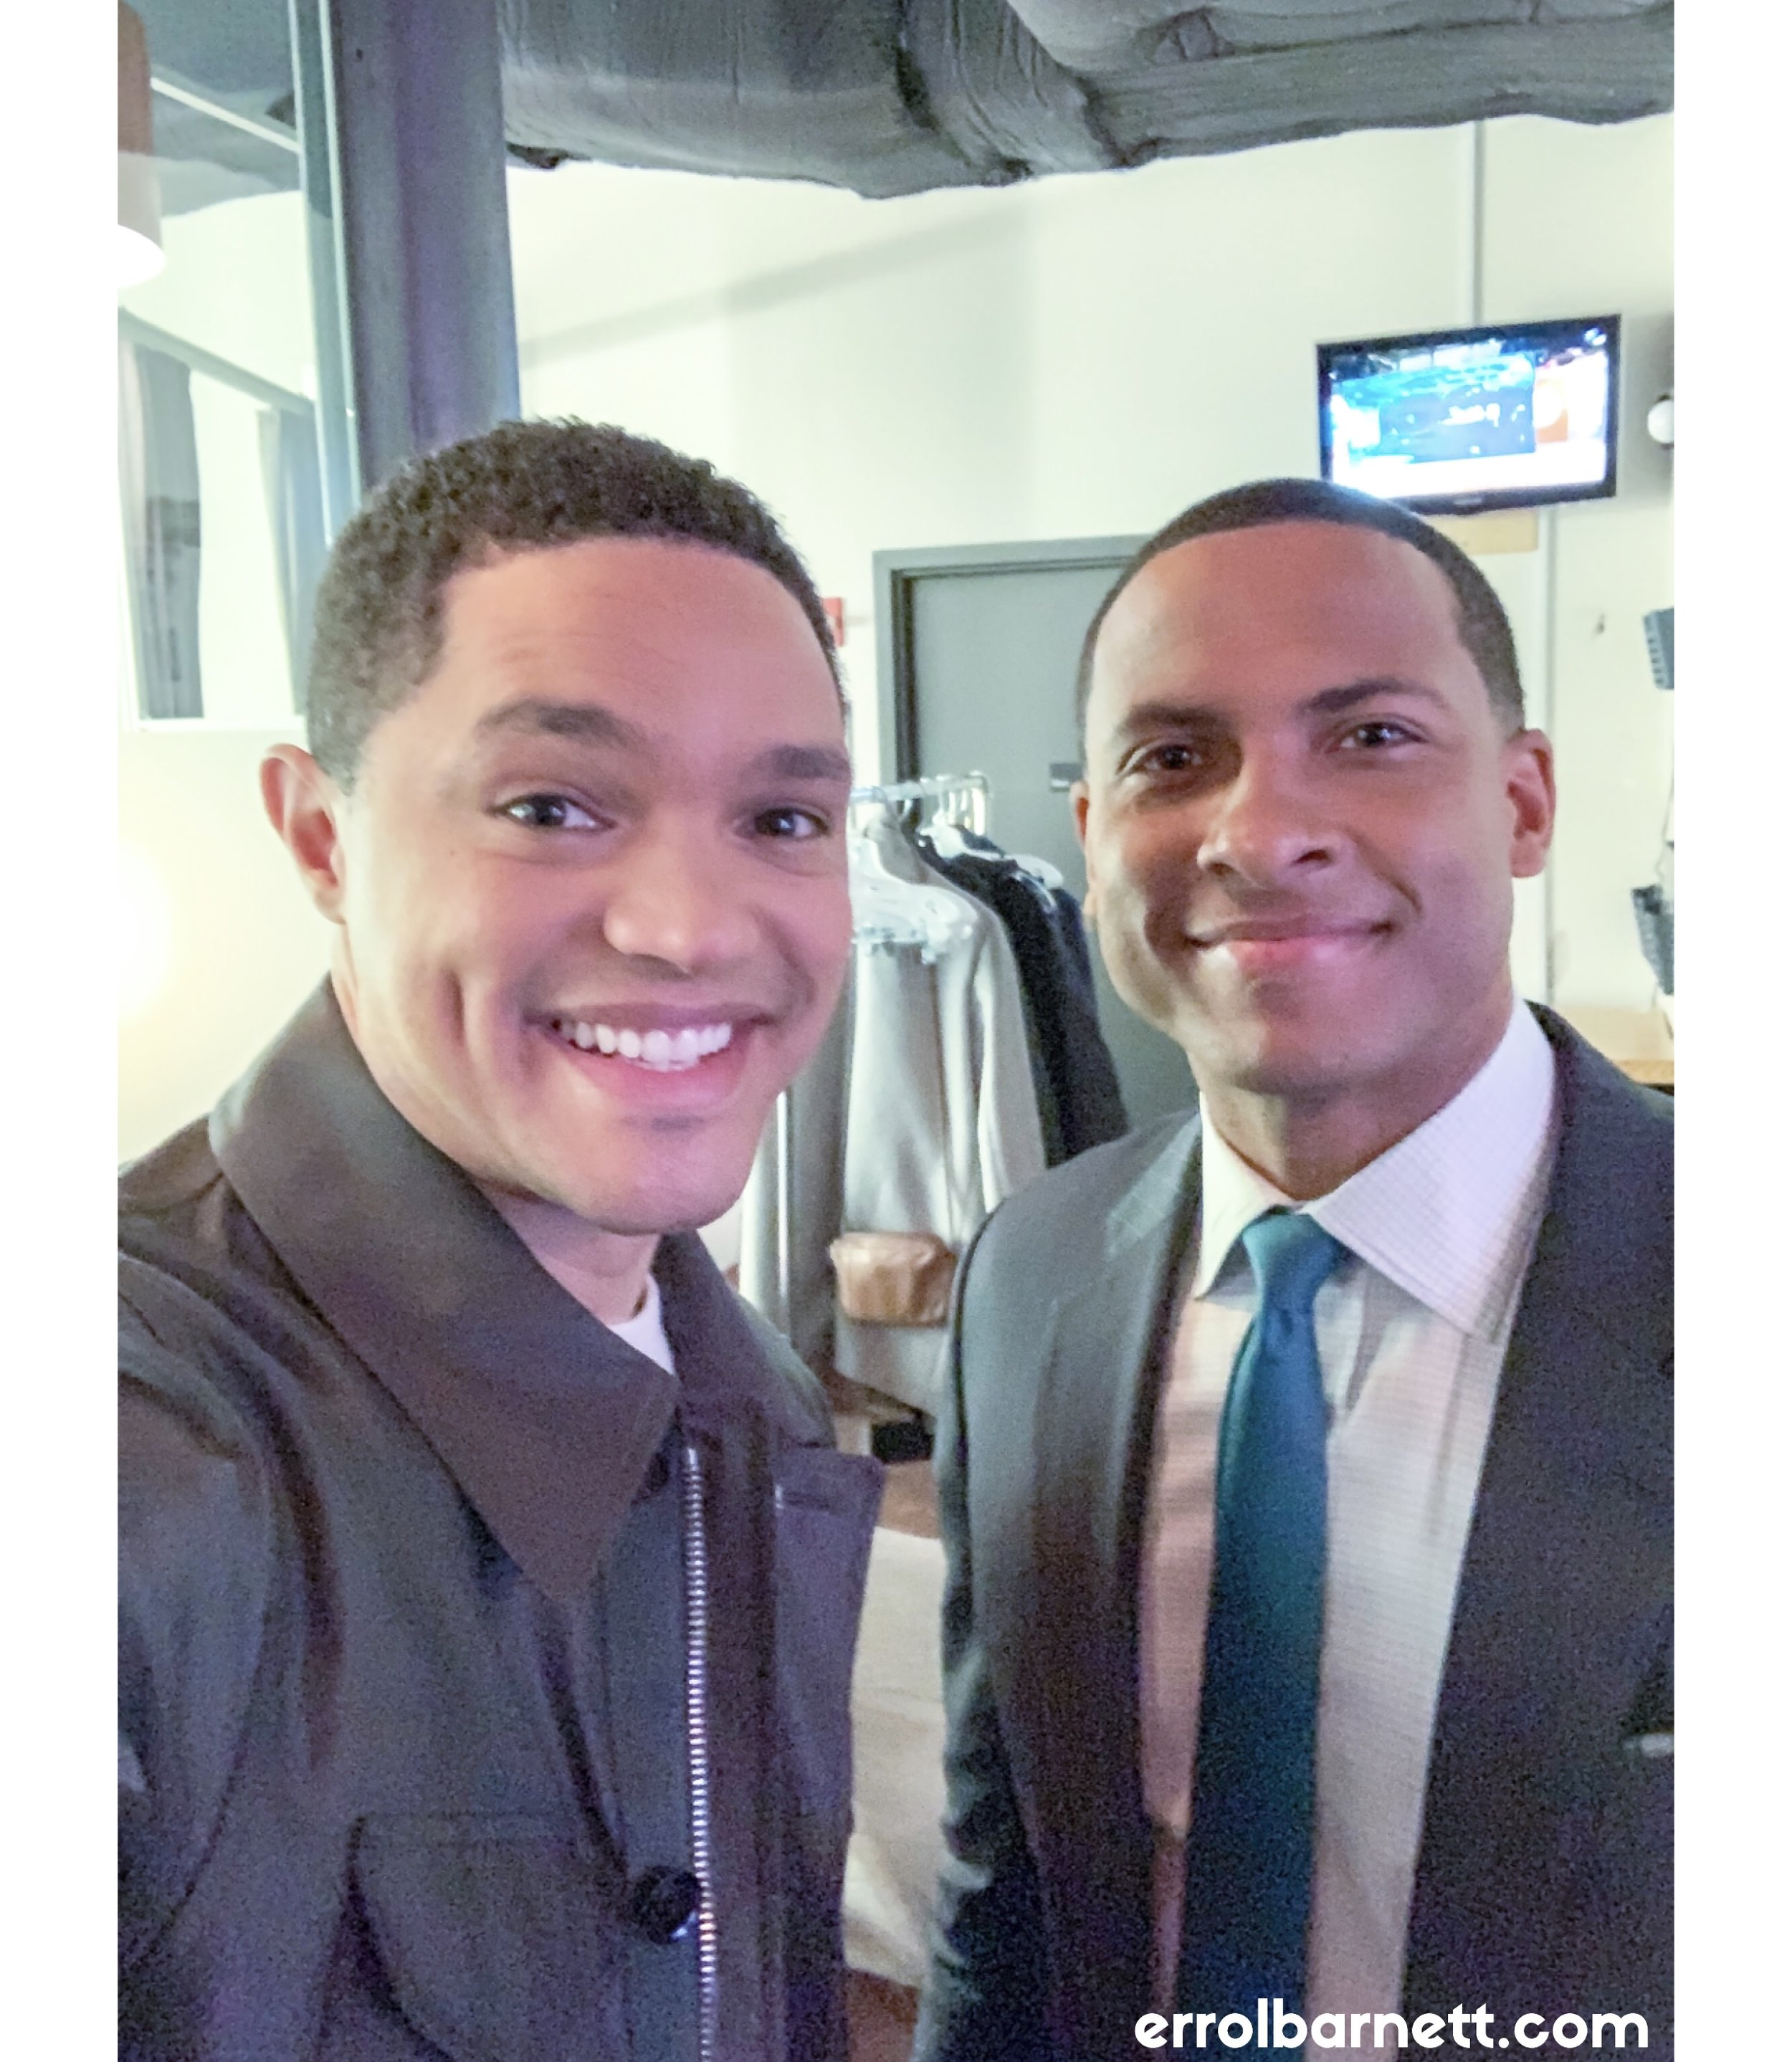 with trevor noah after his visit to cbs this morning.  this brotha approached and remembered me from my time reporting from south africa, i was stunned   he, meanwhile, has been changing the world.  Check out his book 'Born a Crime' and catch the @thedailyshow on @comedycentral.